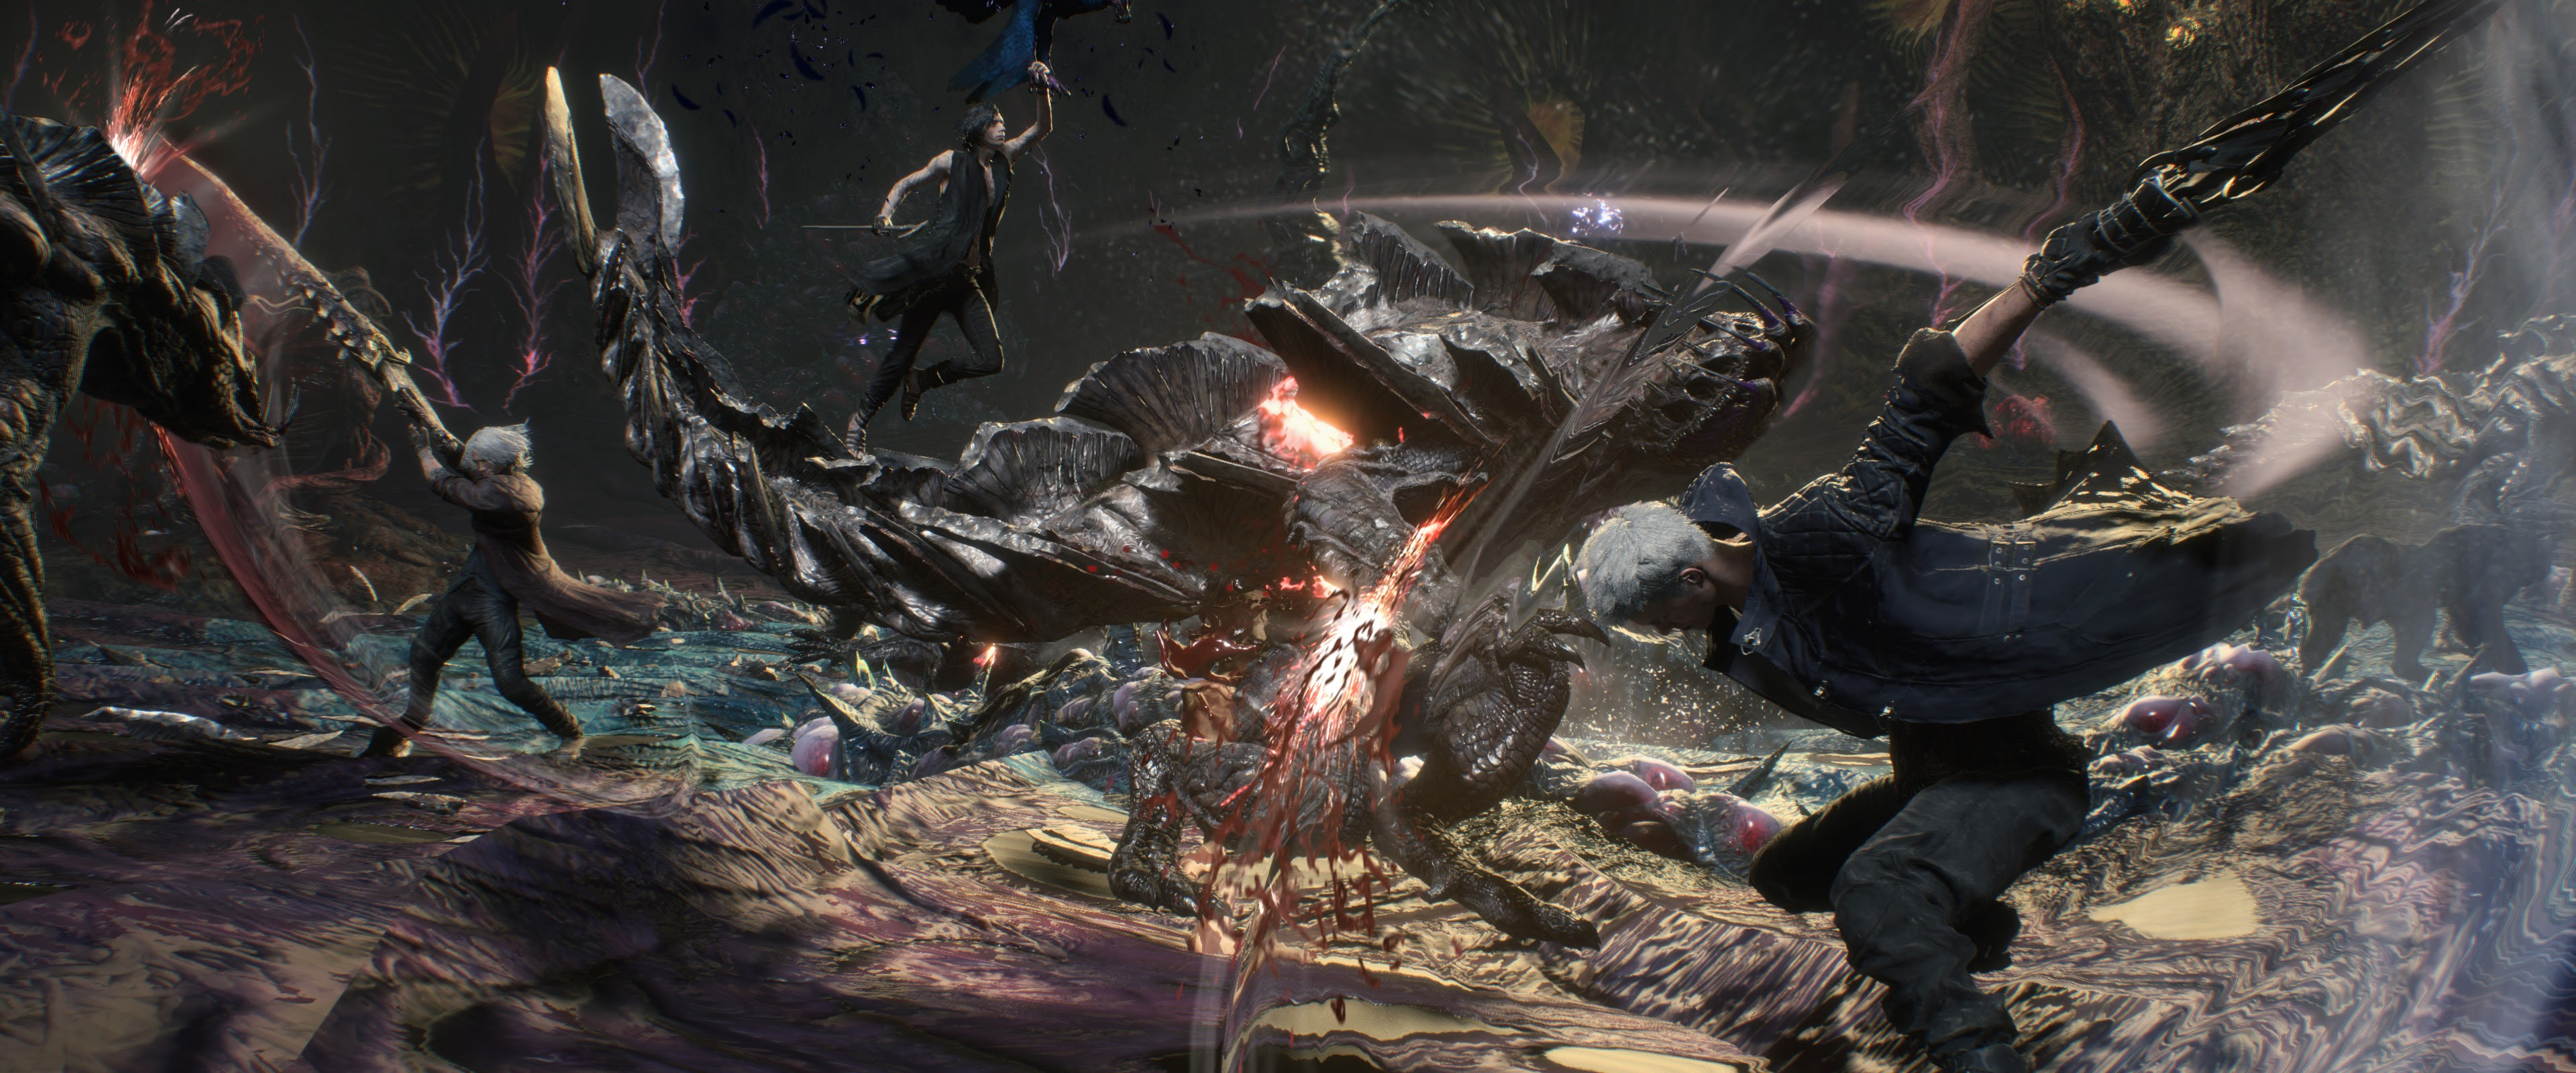 Devil May Cry 5 Nero V Dante Fighting 4k Wallpaper 25